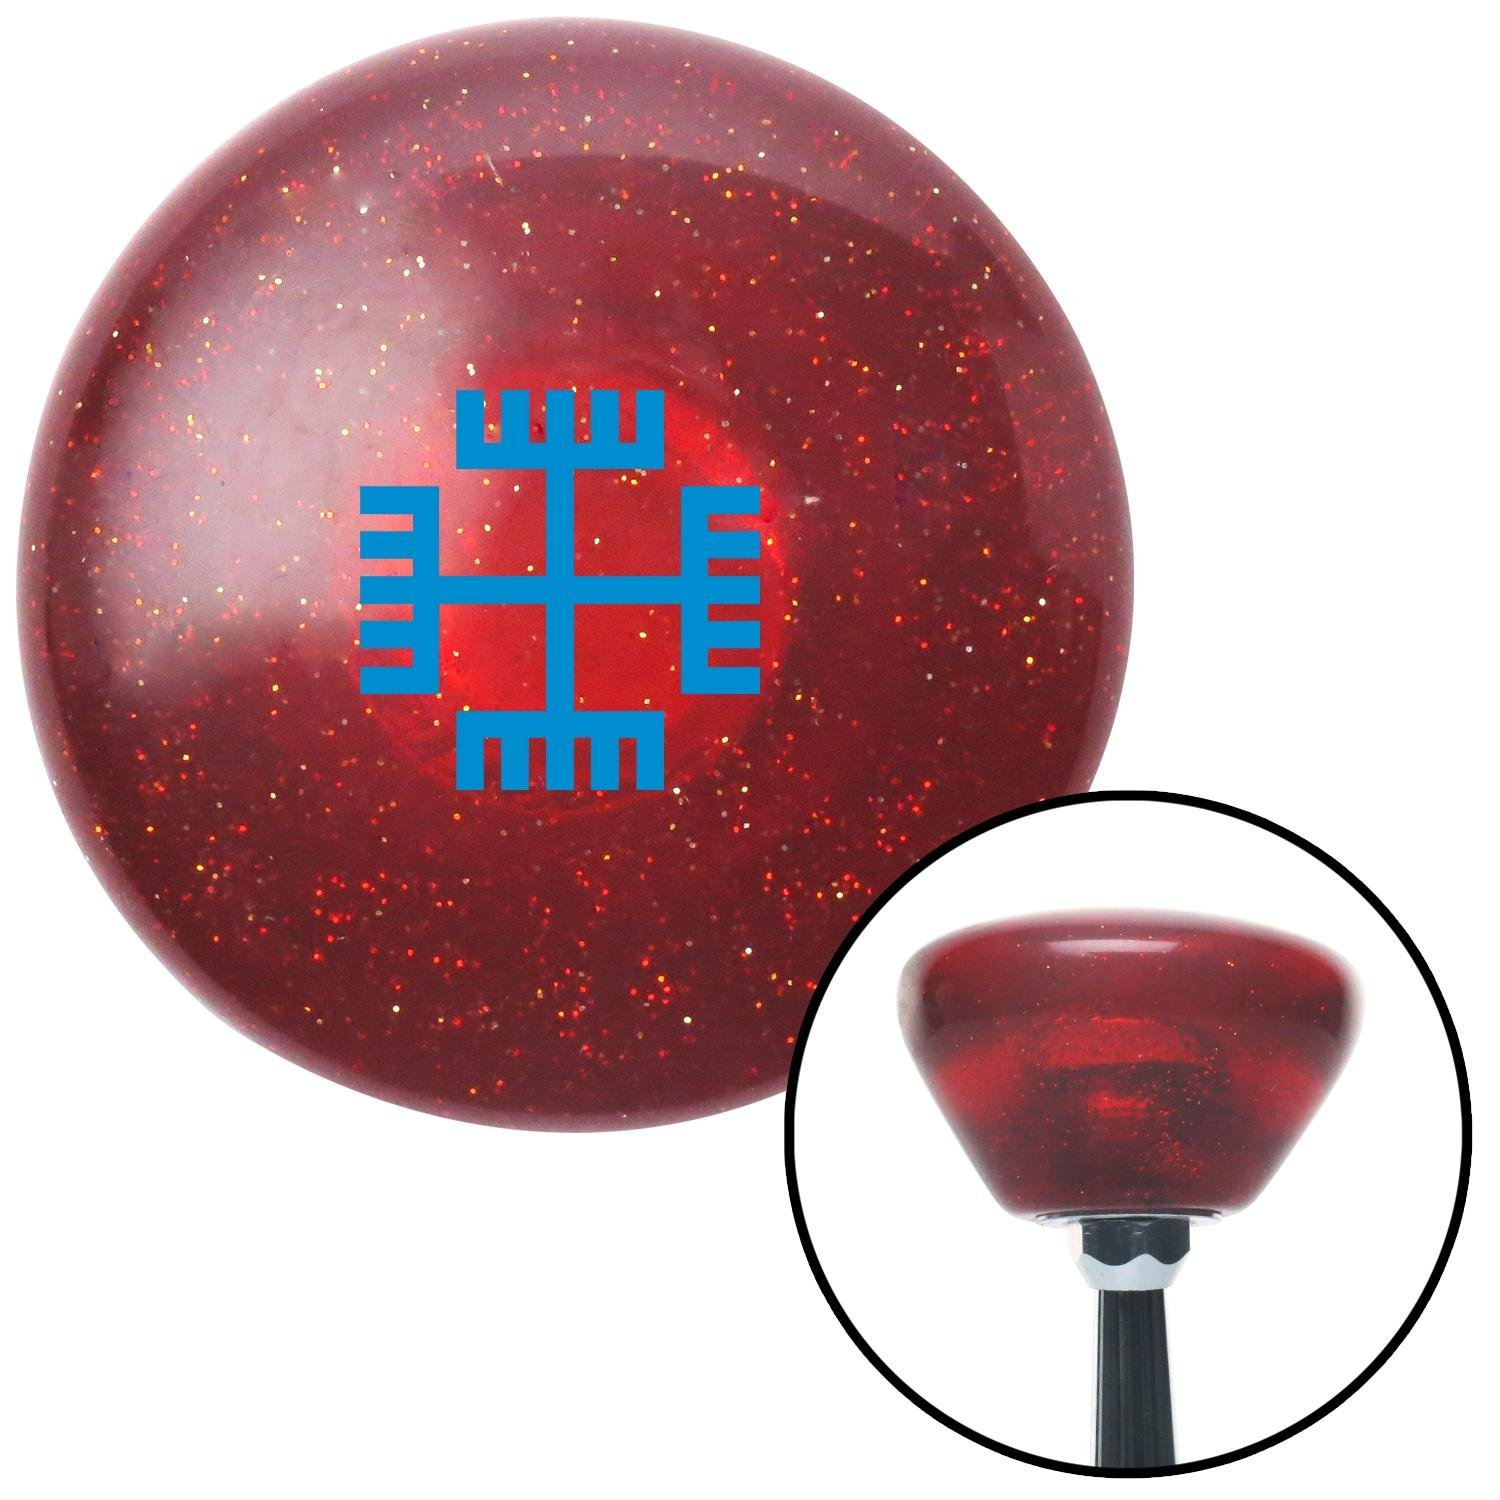 Blue Hands of God American Shifter 195917 Red Retro Metal Flake Shift Knob with M16 x 1.5 Insert